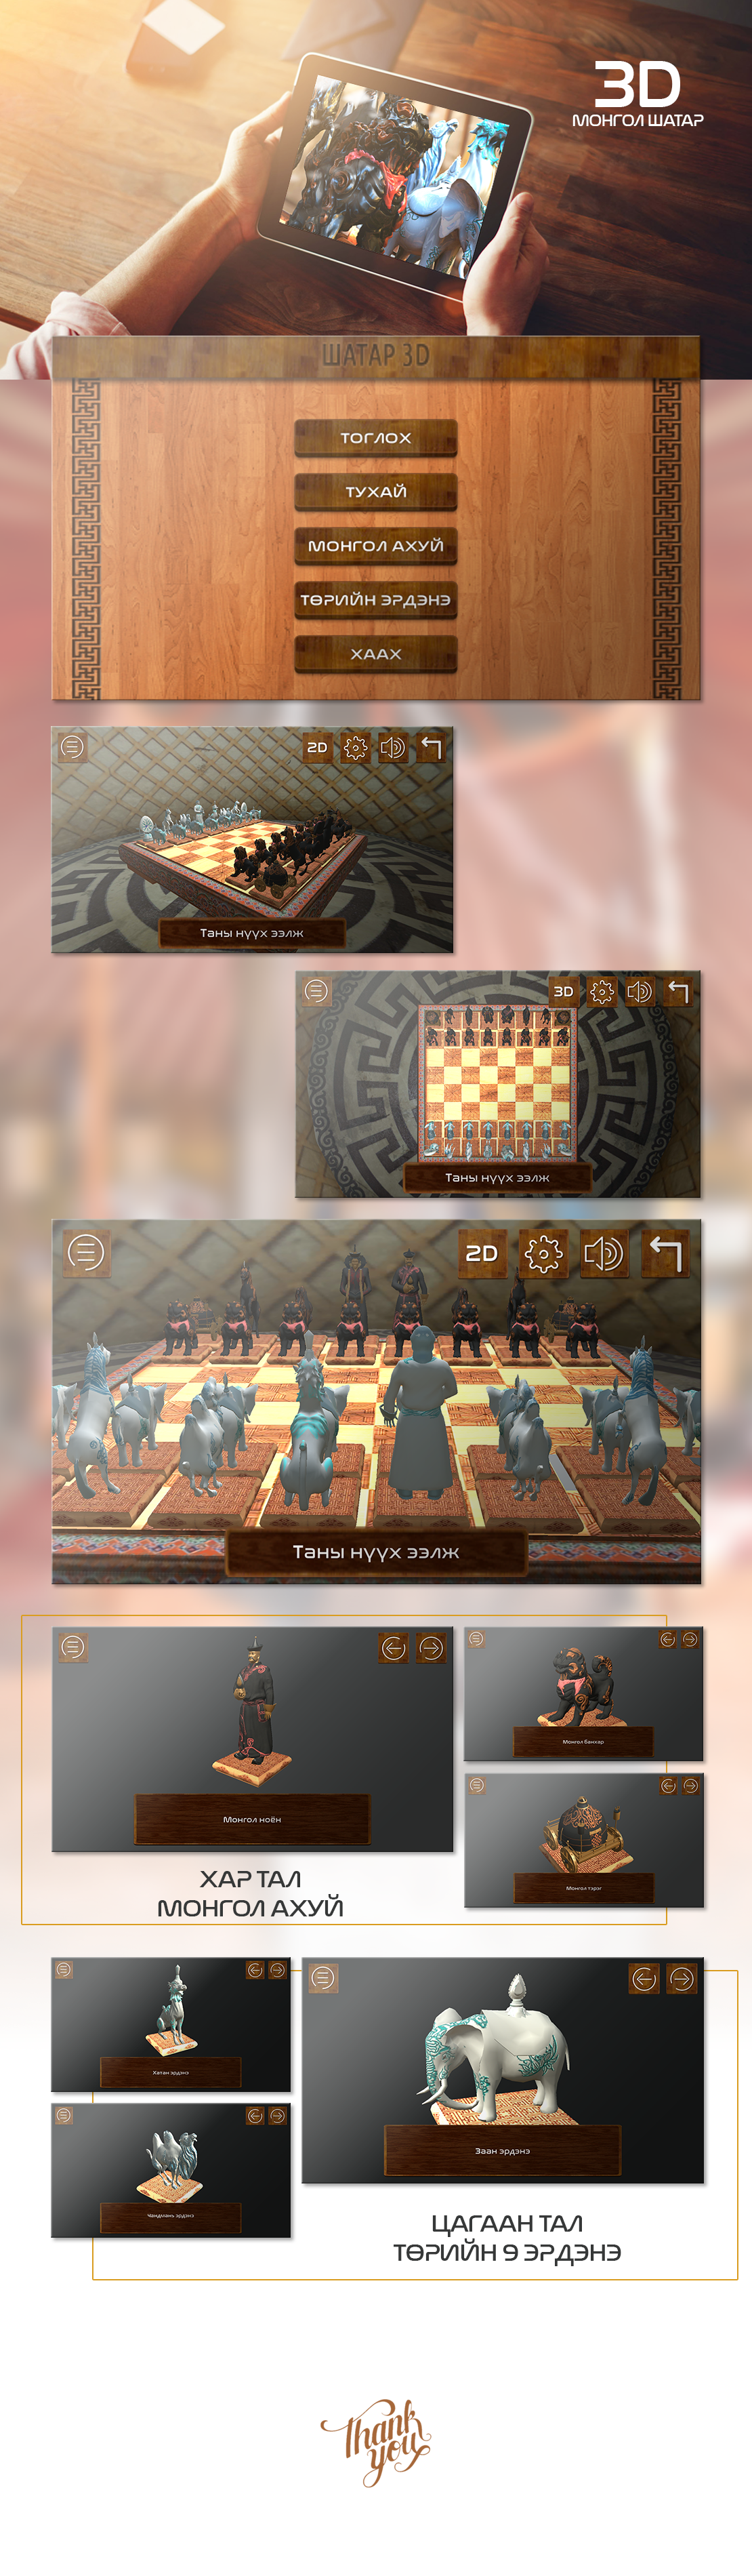 3d chess android app